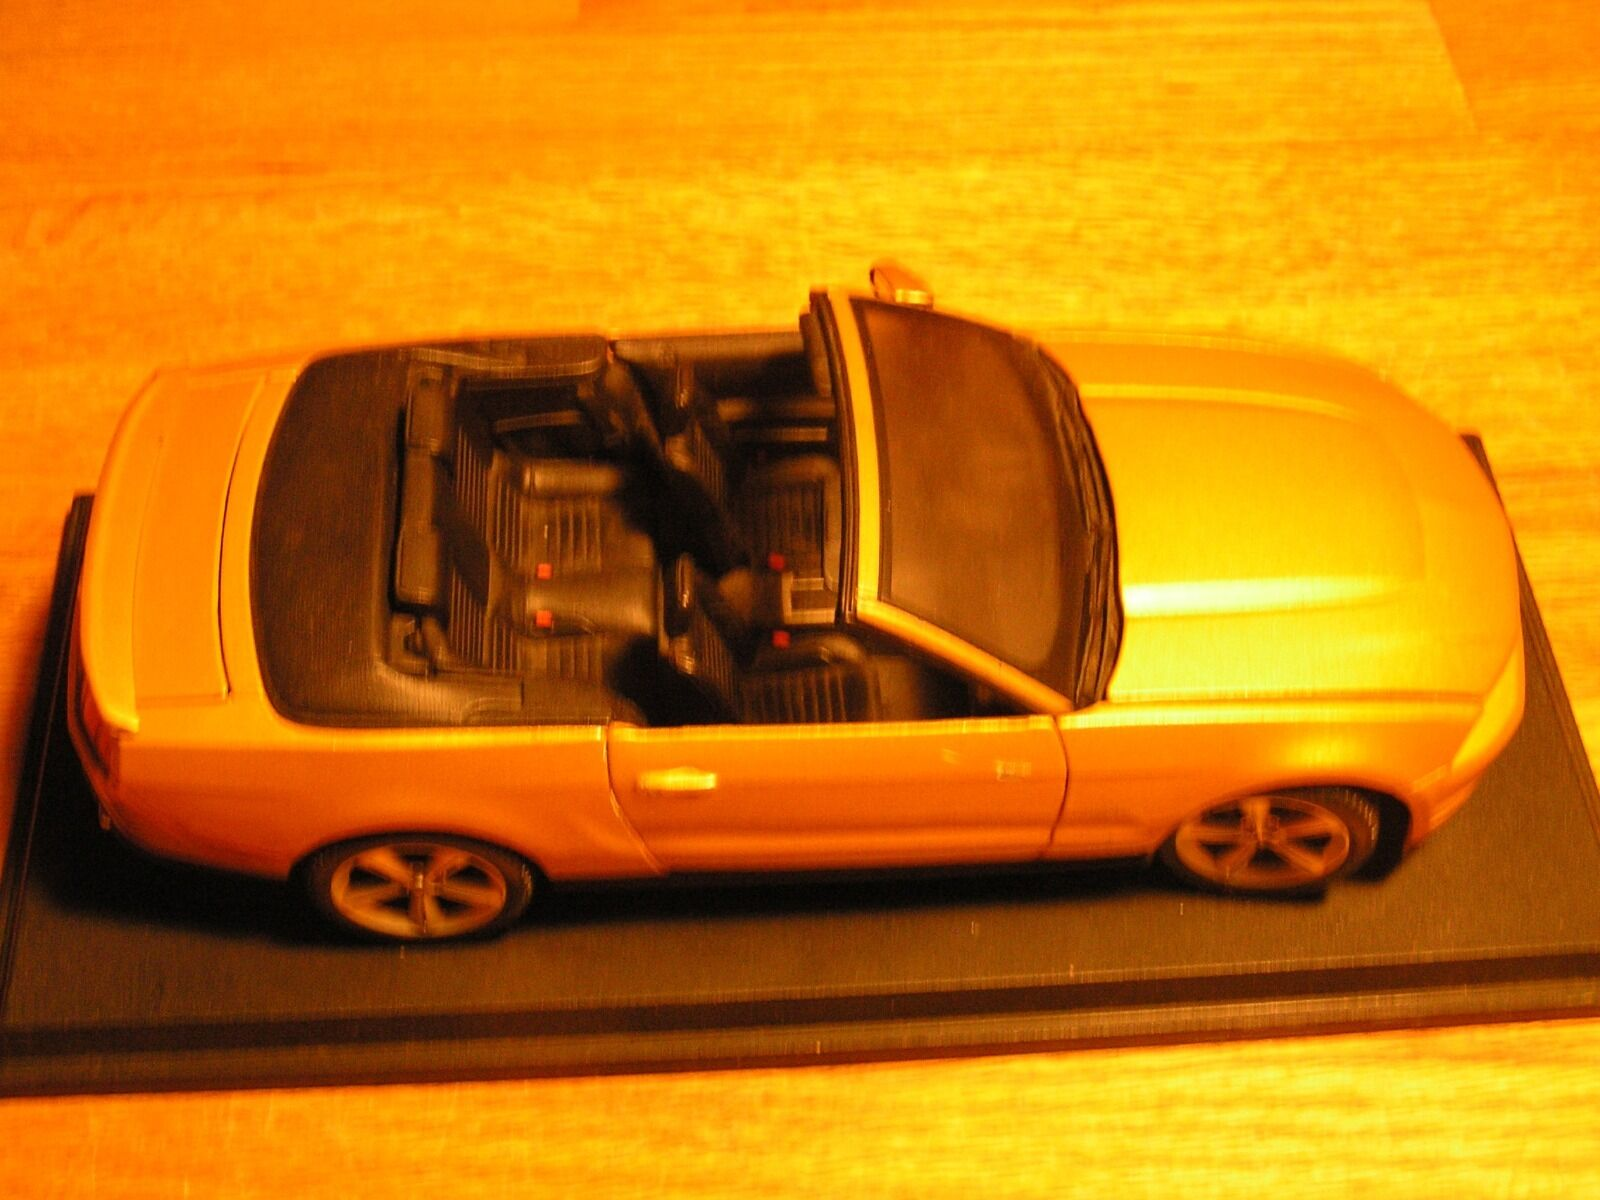 Ford Mustang GT 2010 2010 2010 Maisto Congreenible in gold-miniature model-Special Edition. 32ecd6